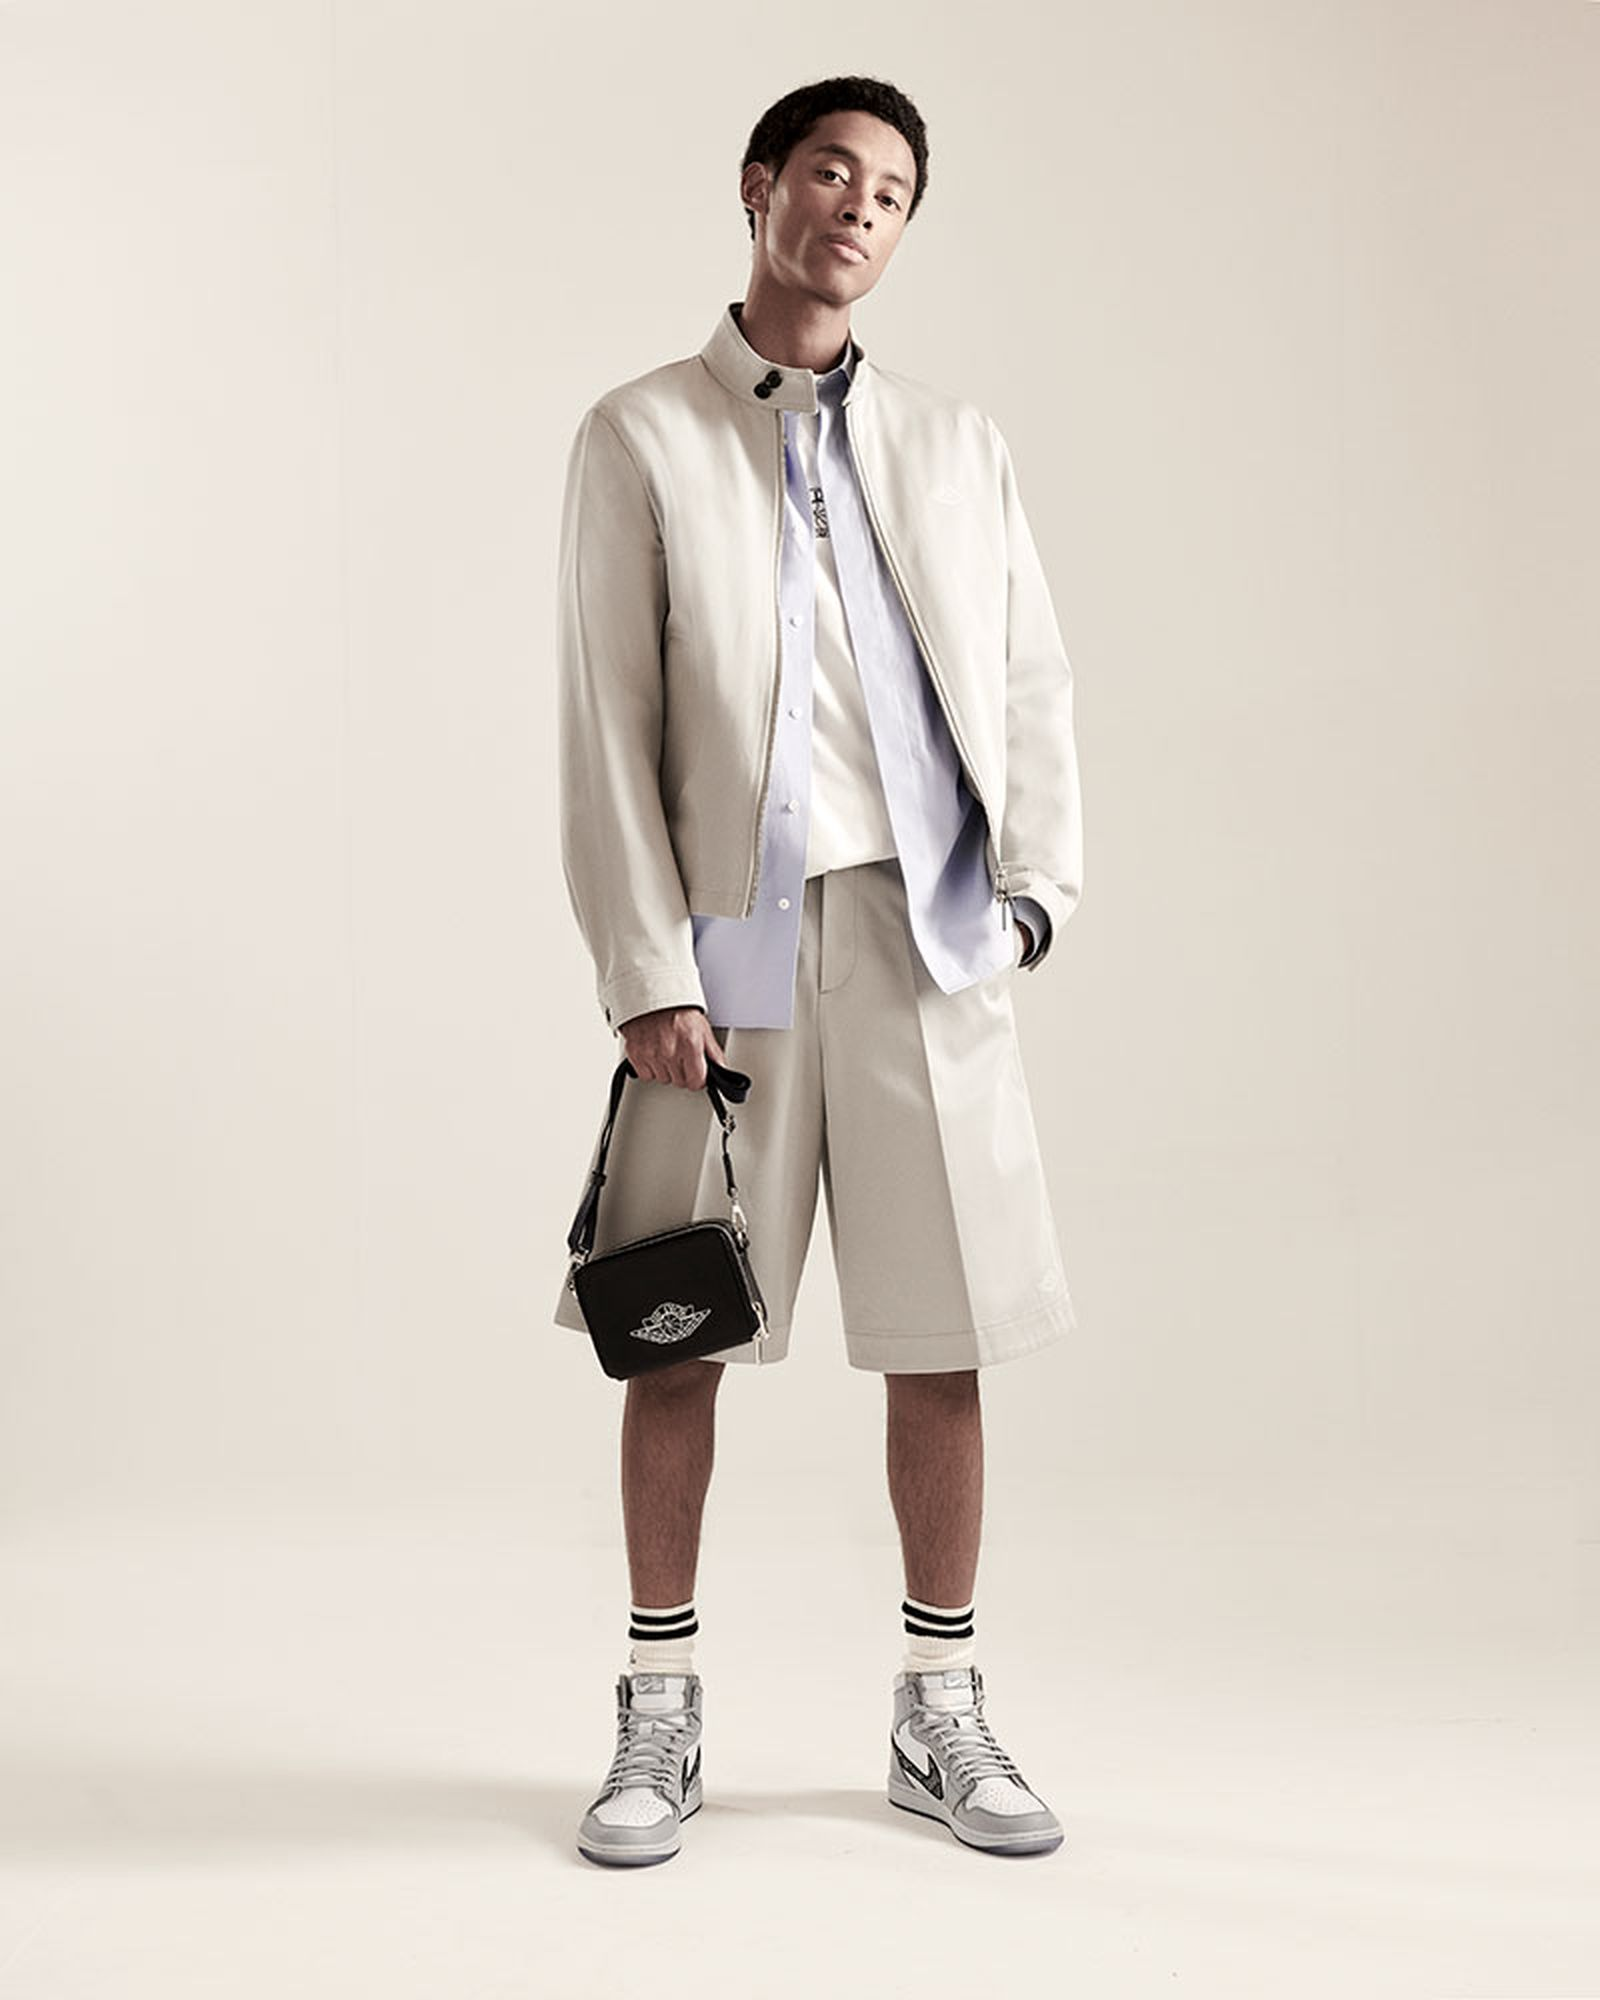 Dior x Nike Air Jordan 1 lookbook